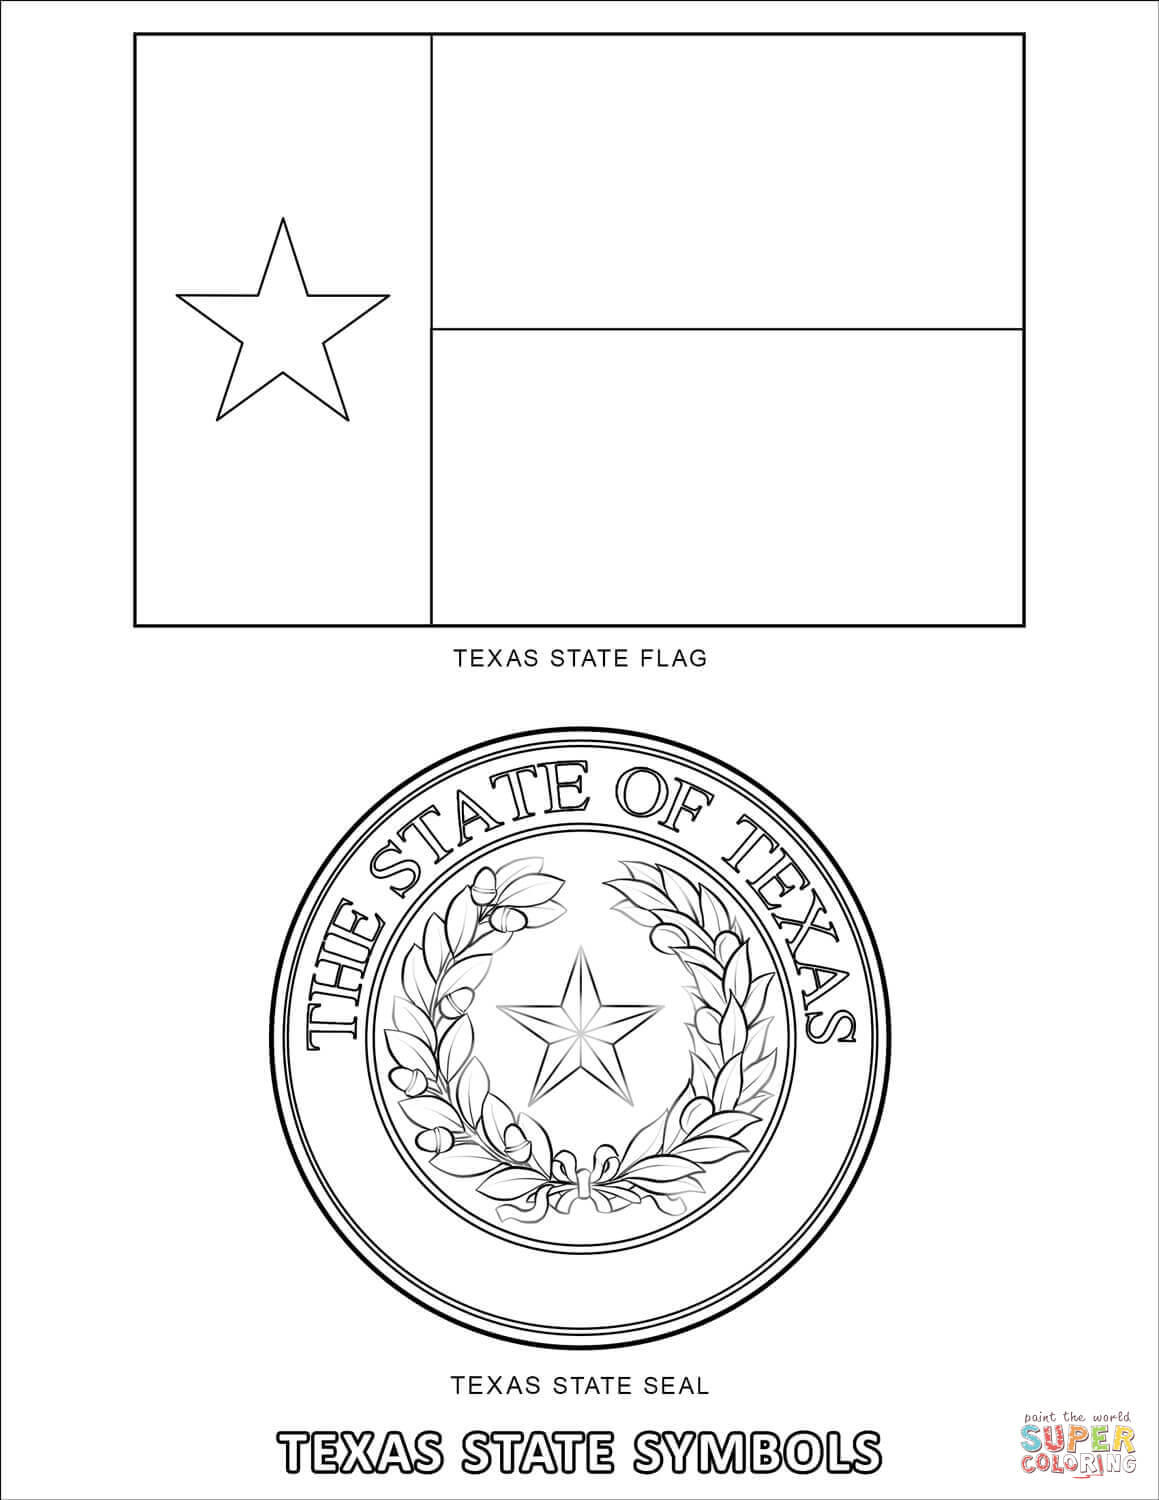 texas symbols coloring pages color or paint the flag flag coloring pages coloring symbols pages texas coloring